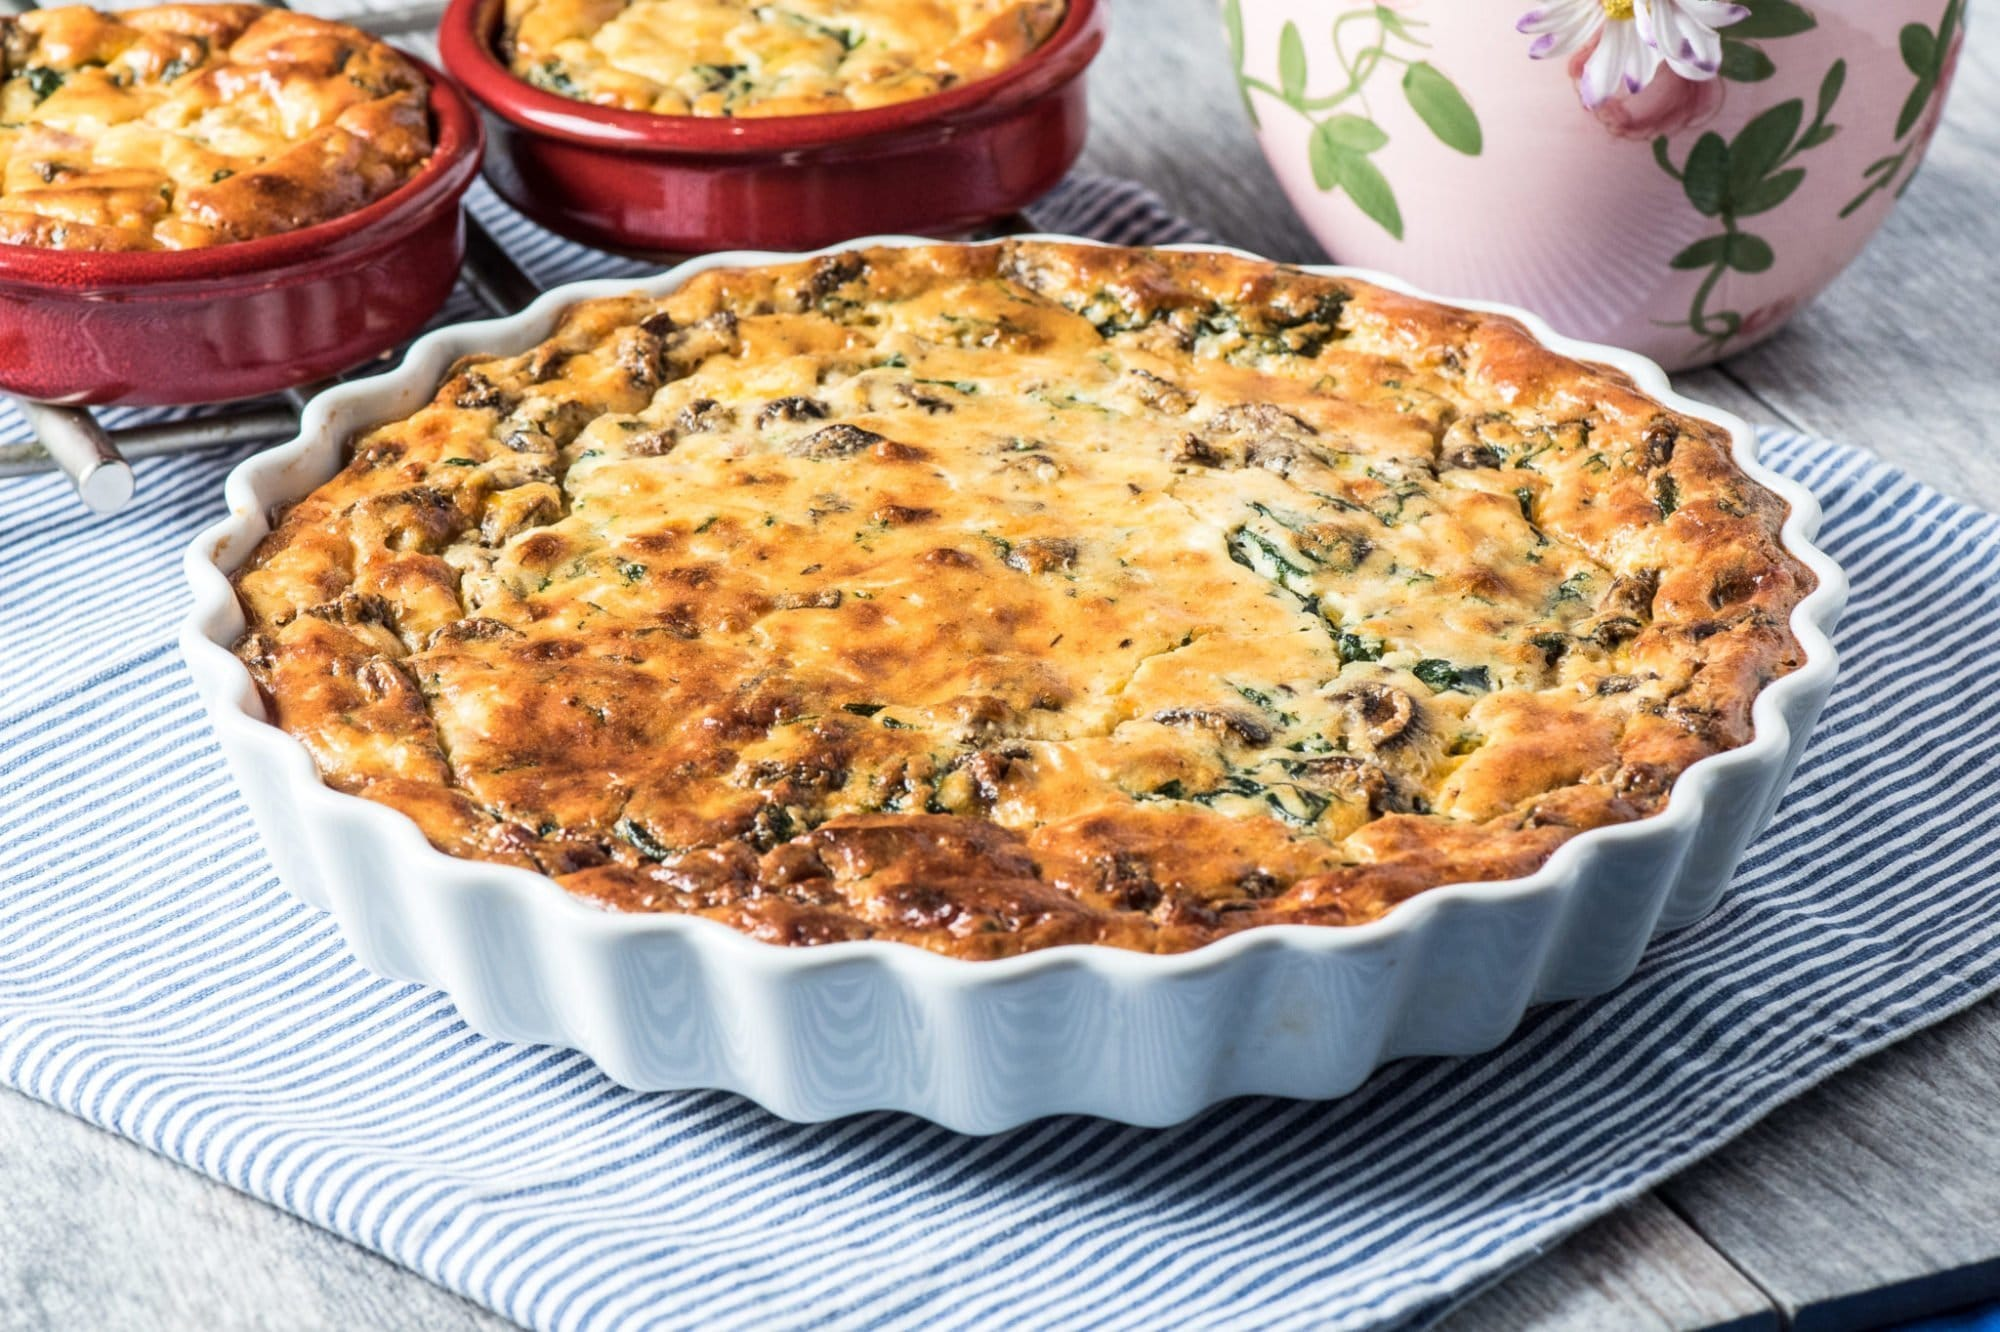 Crustless Quiche With Spinach And Ricotta Tasty Low Carb